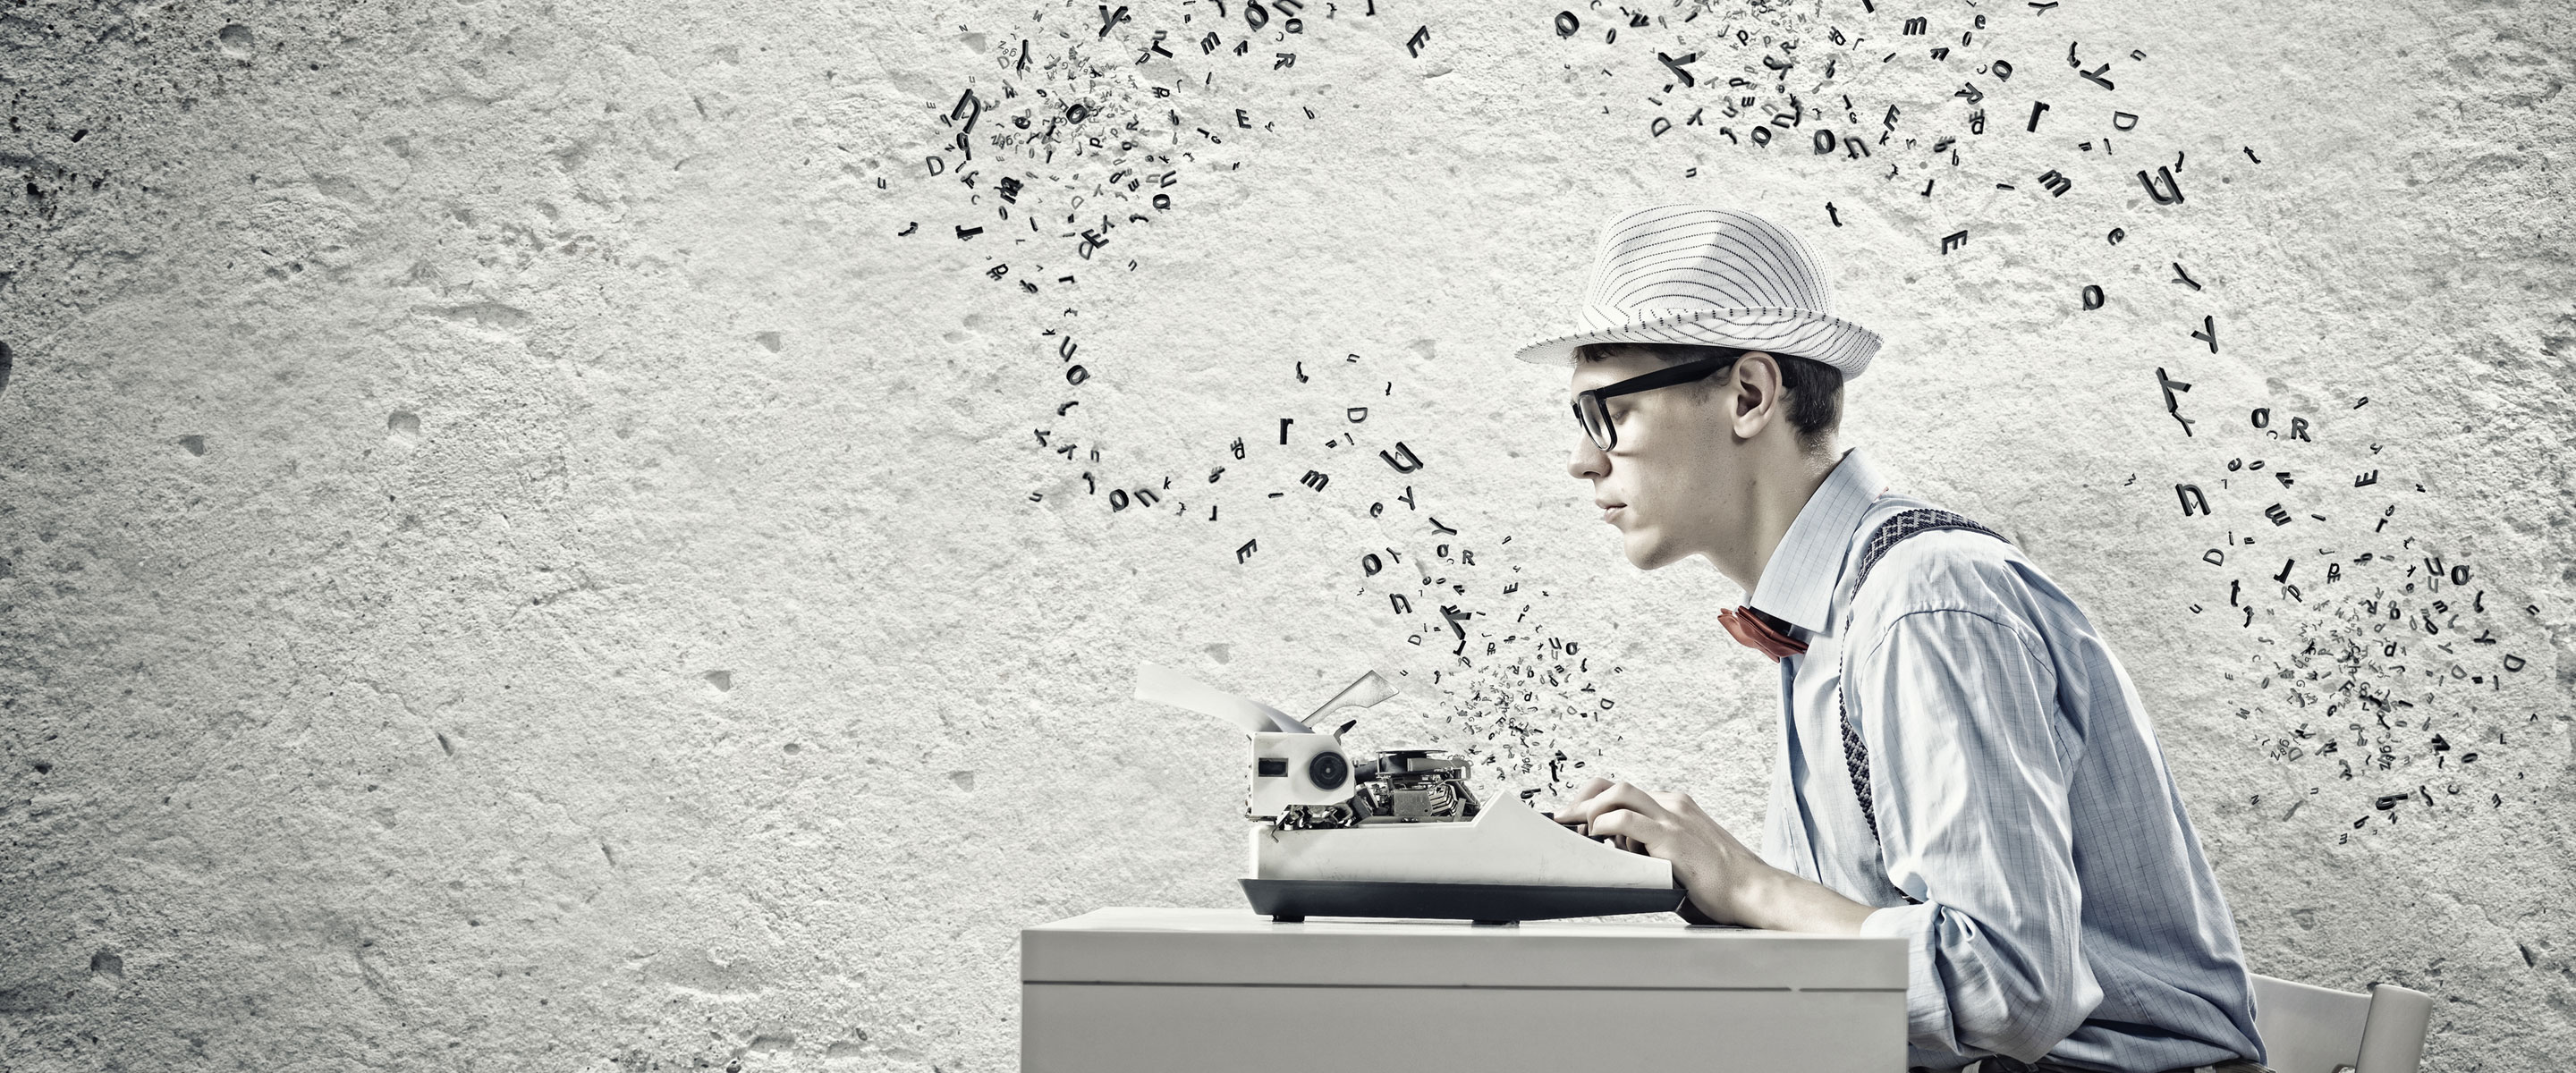 guy with typewriter